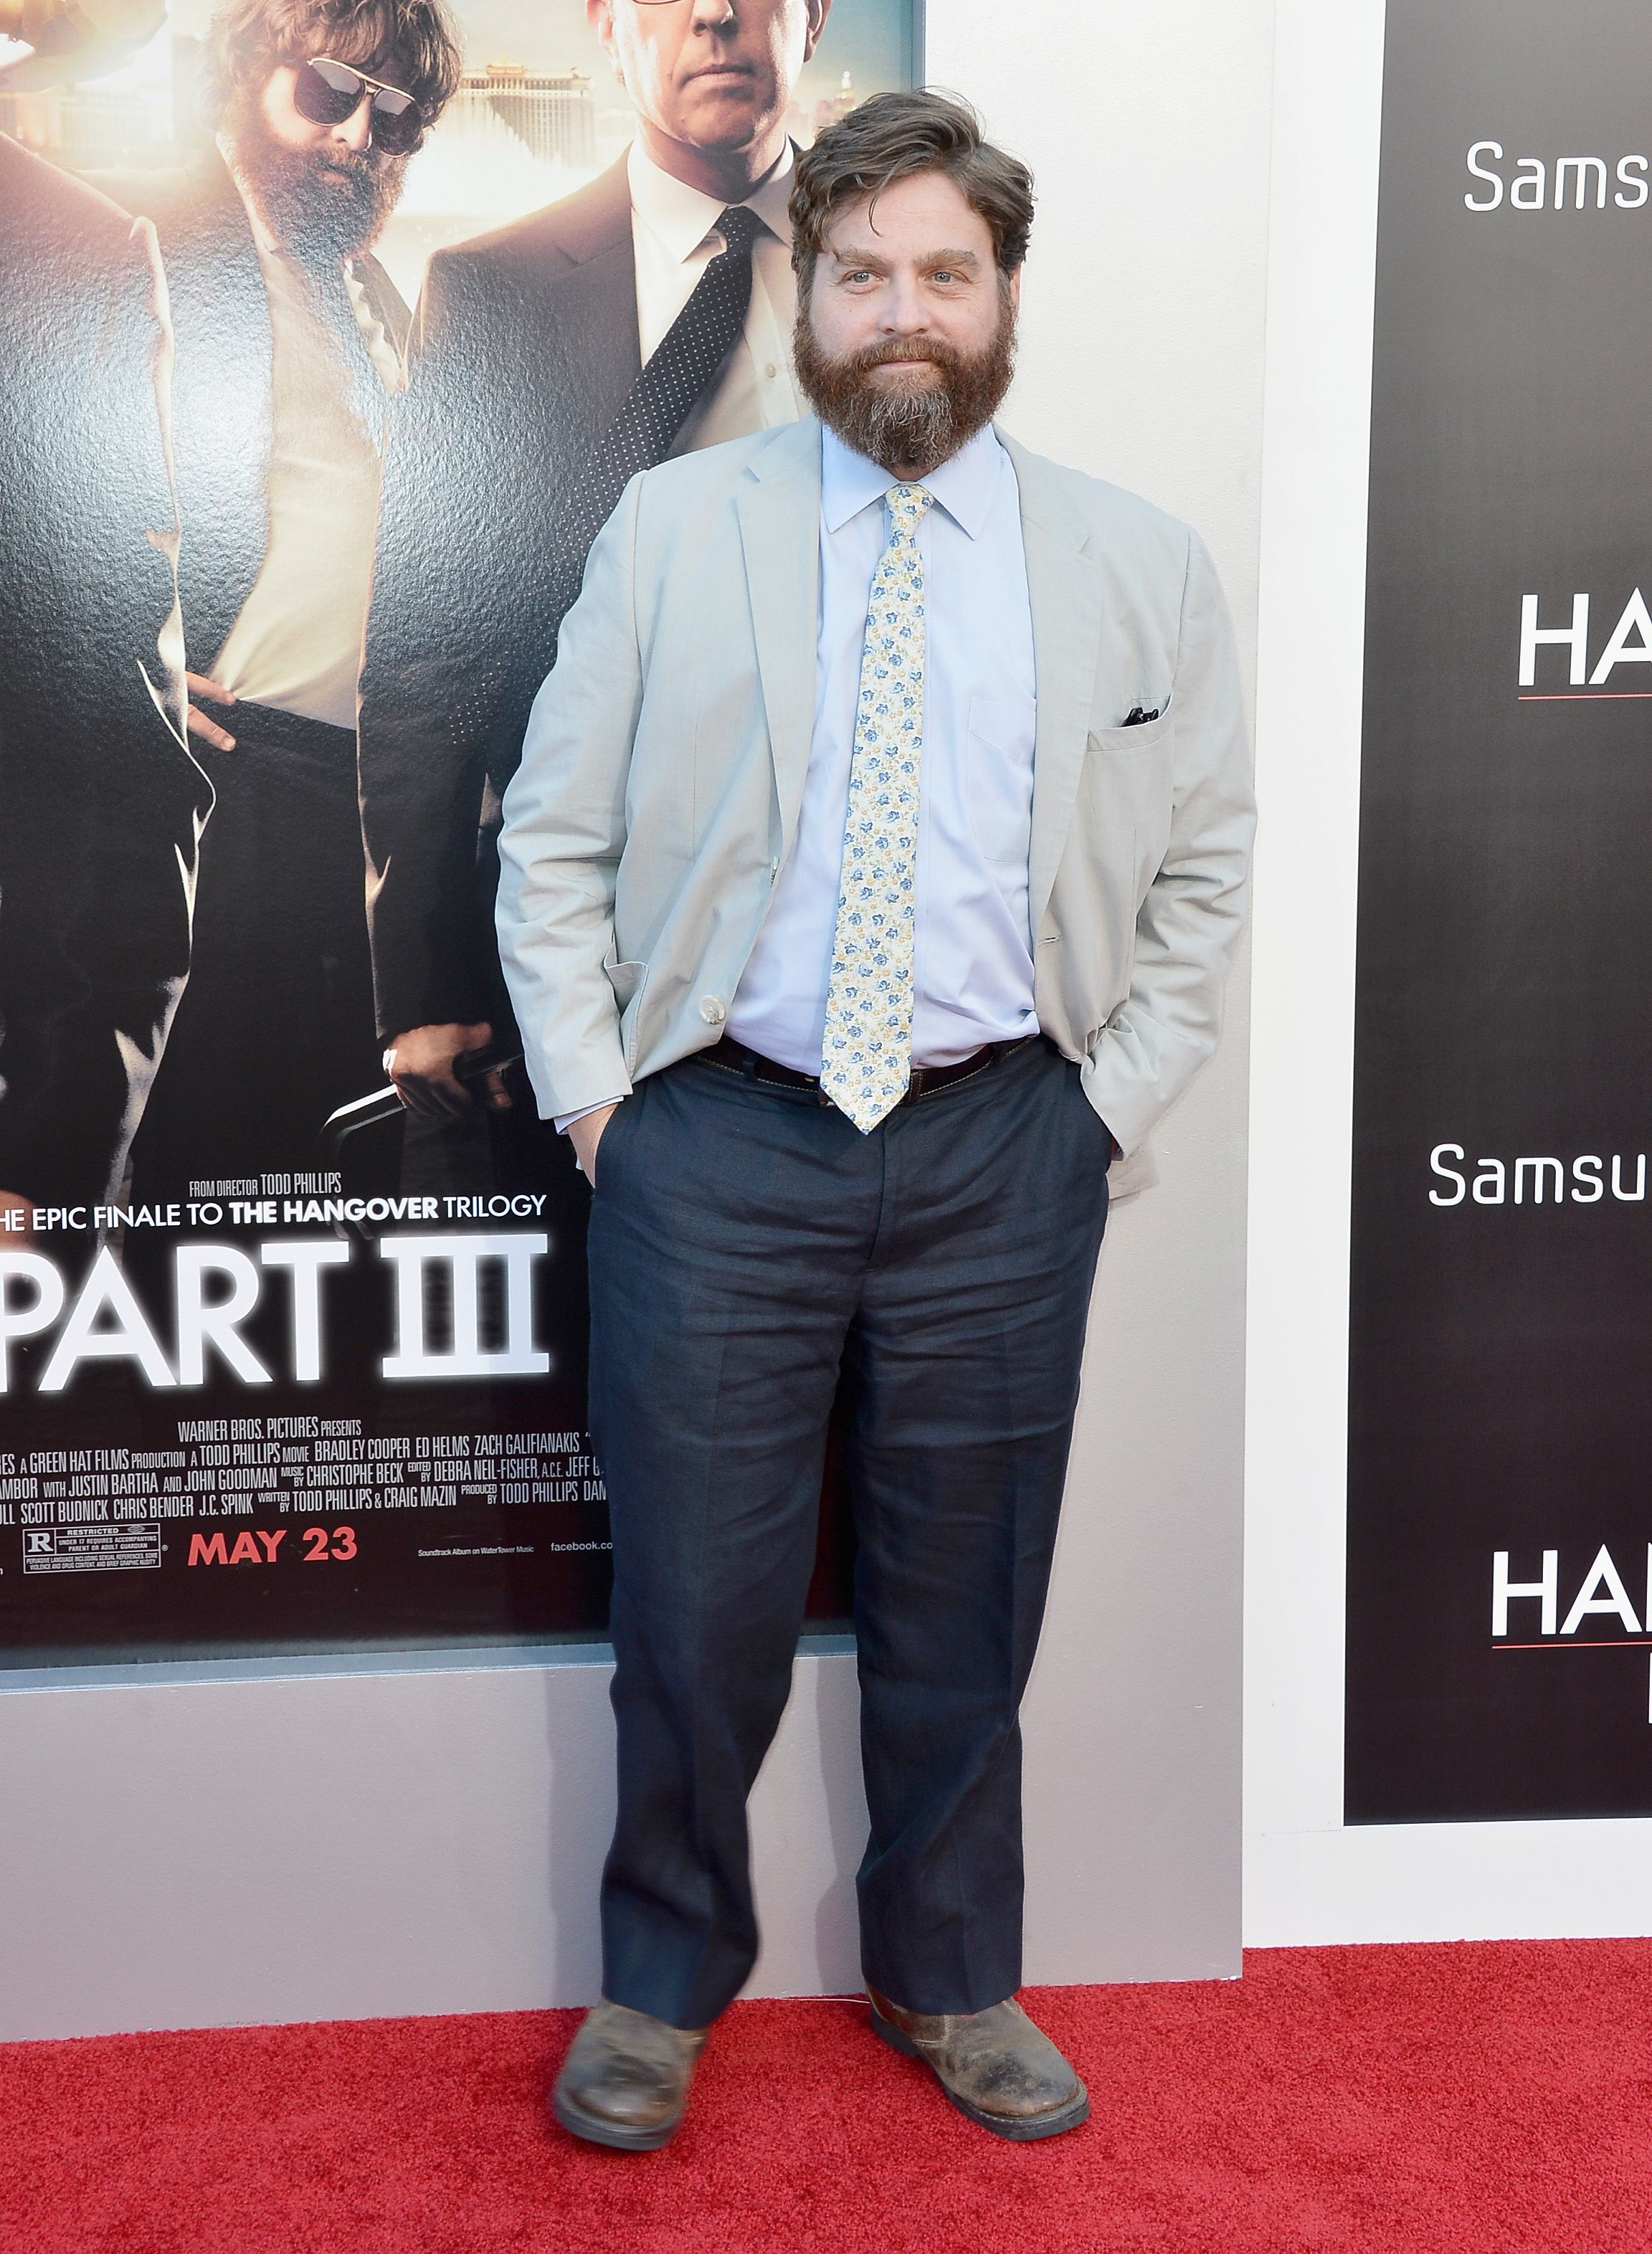 Zach Galifianakis Played The Pudgy Brother In Law Hangover Series But Now Comedian Shed A Ton Of Weight